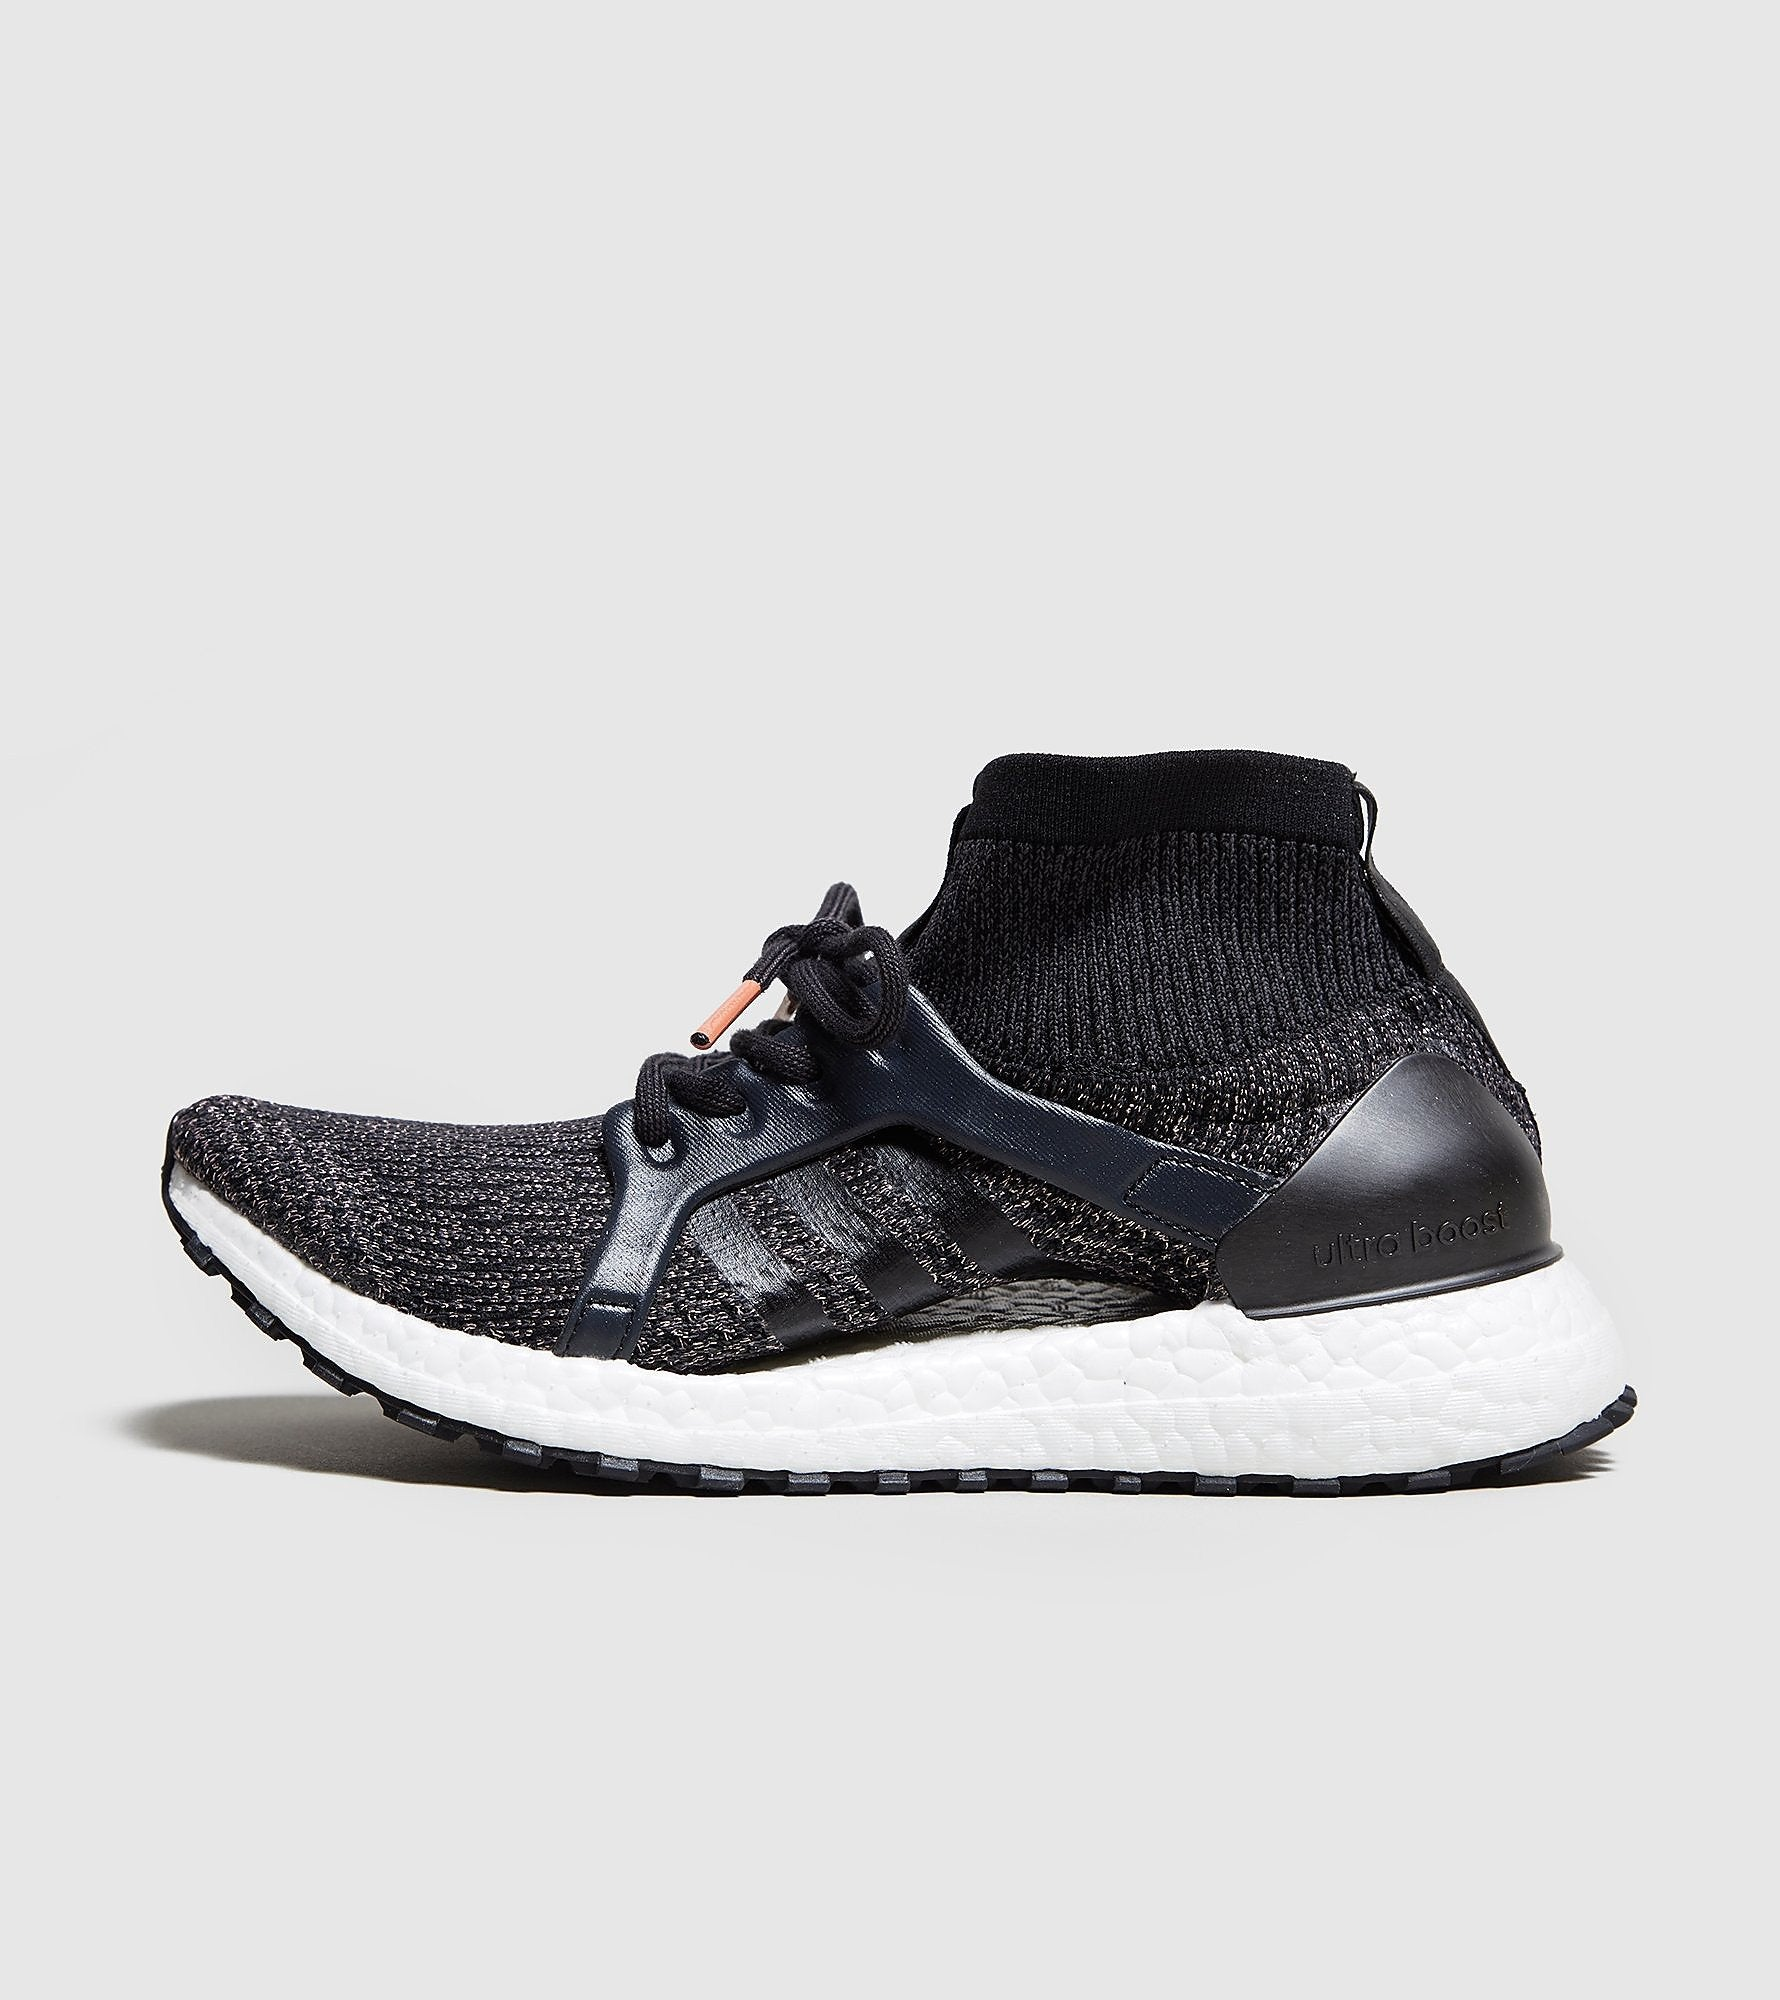 sports shoes 89e5c 096ff Adidas adidas UltraBoost All Terrain Women's, Black/White at Soleheaven  Curated Collections